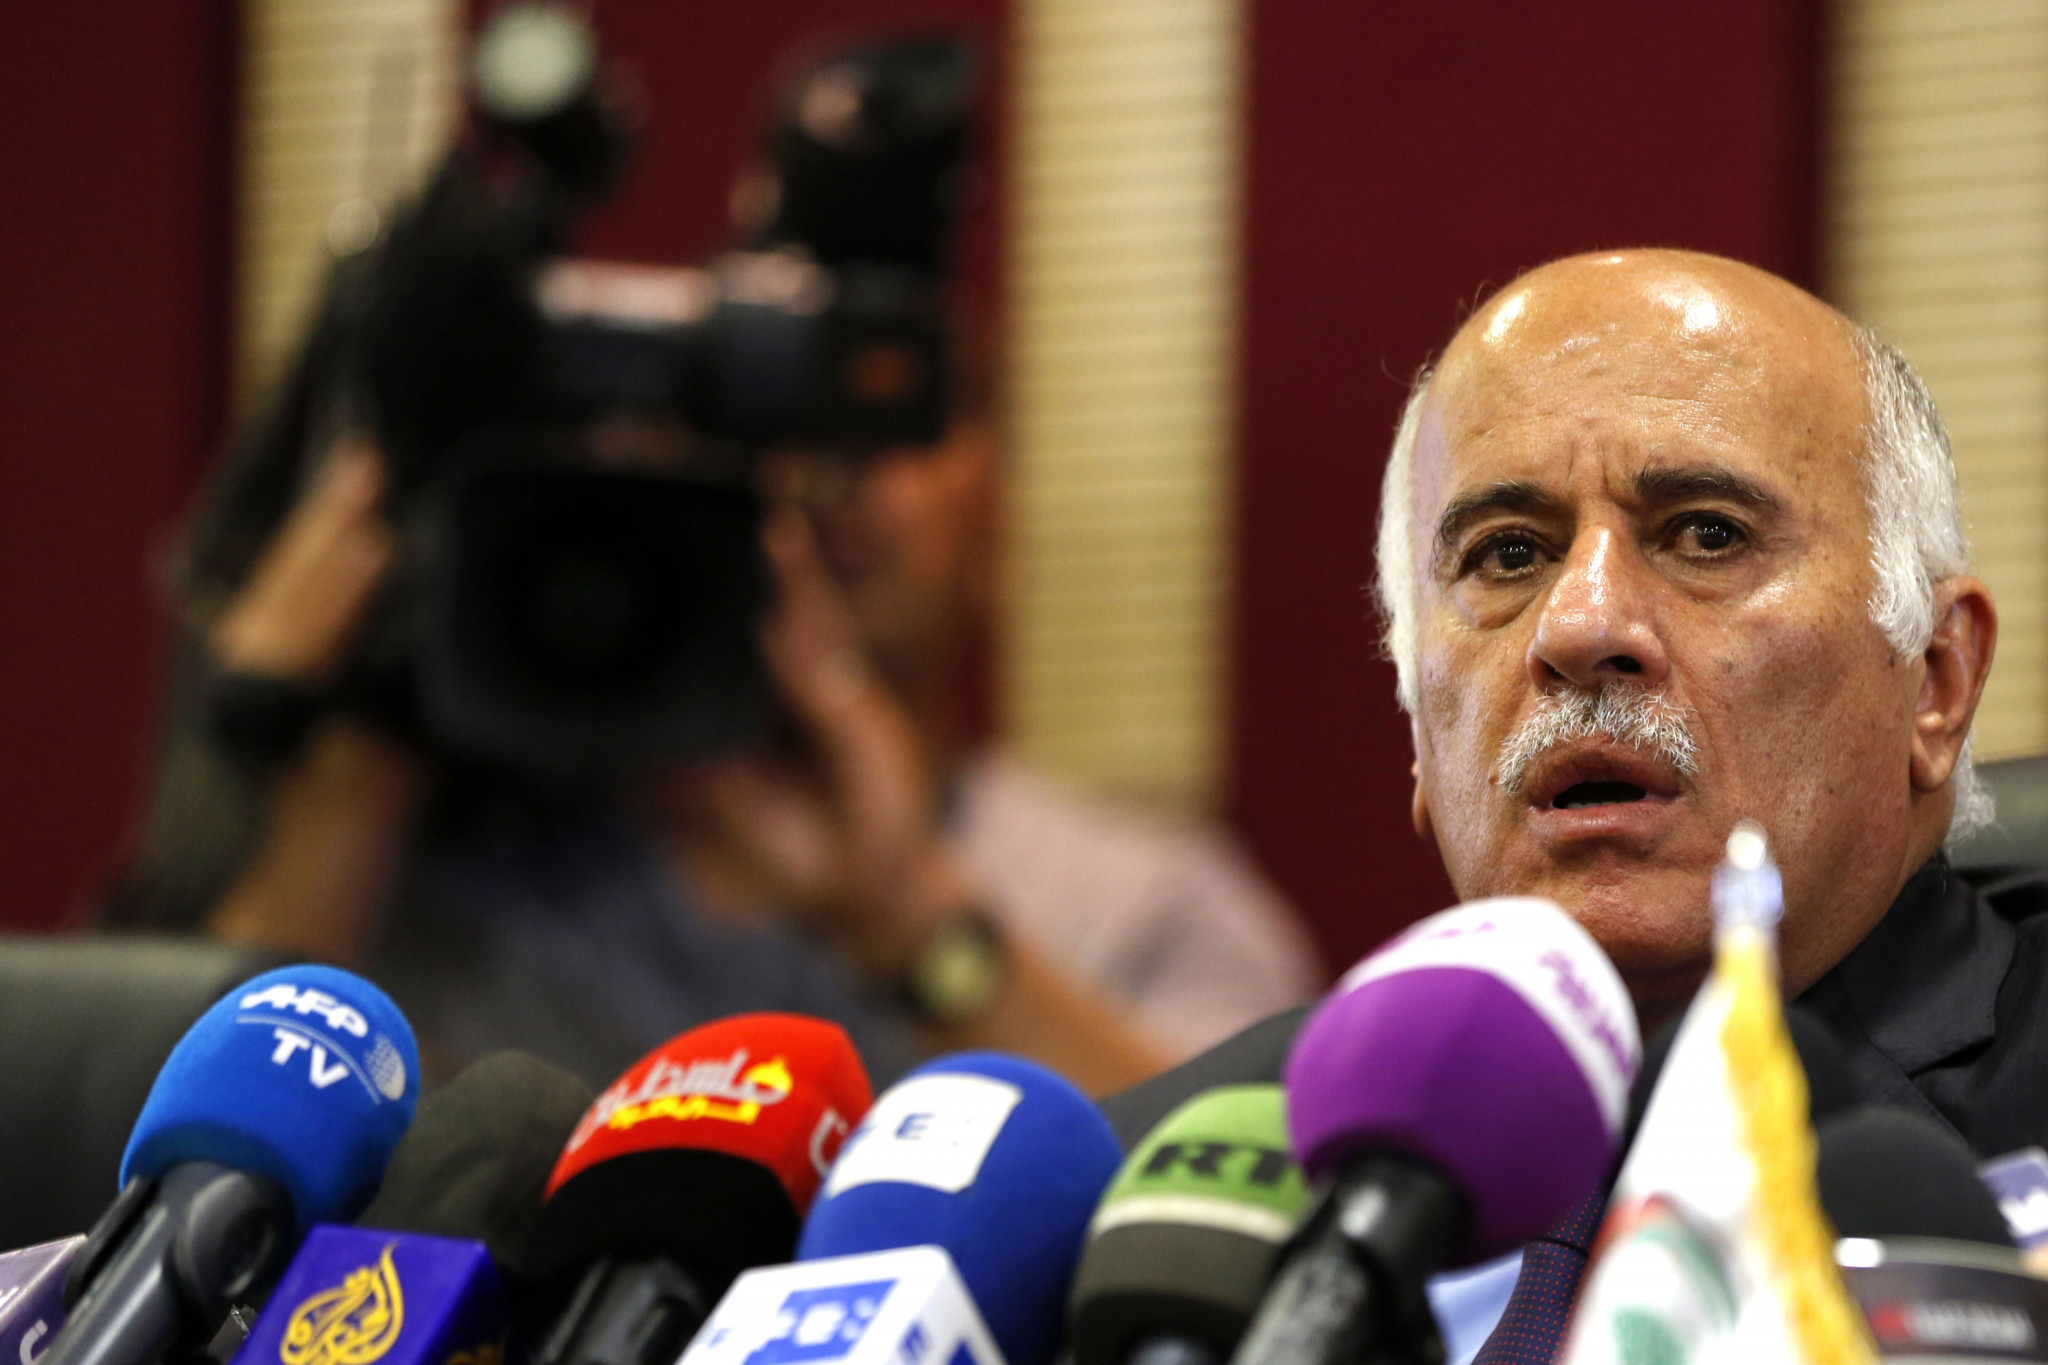 Jibril Rajoub will appeal his ban ©Getty Images